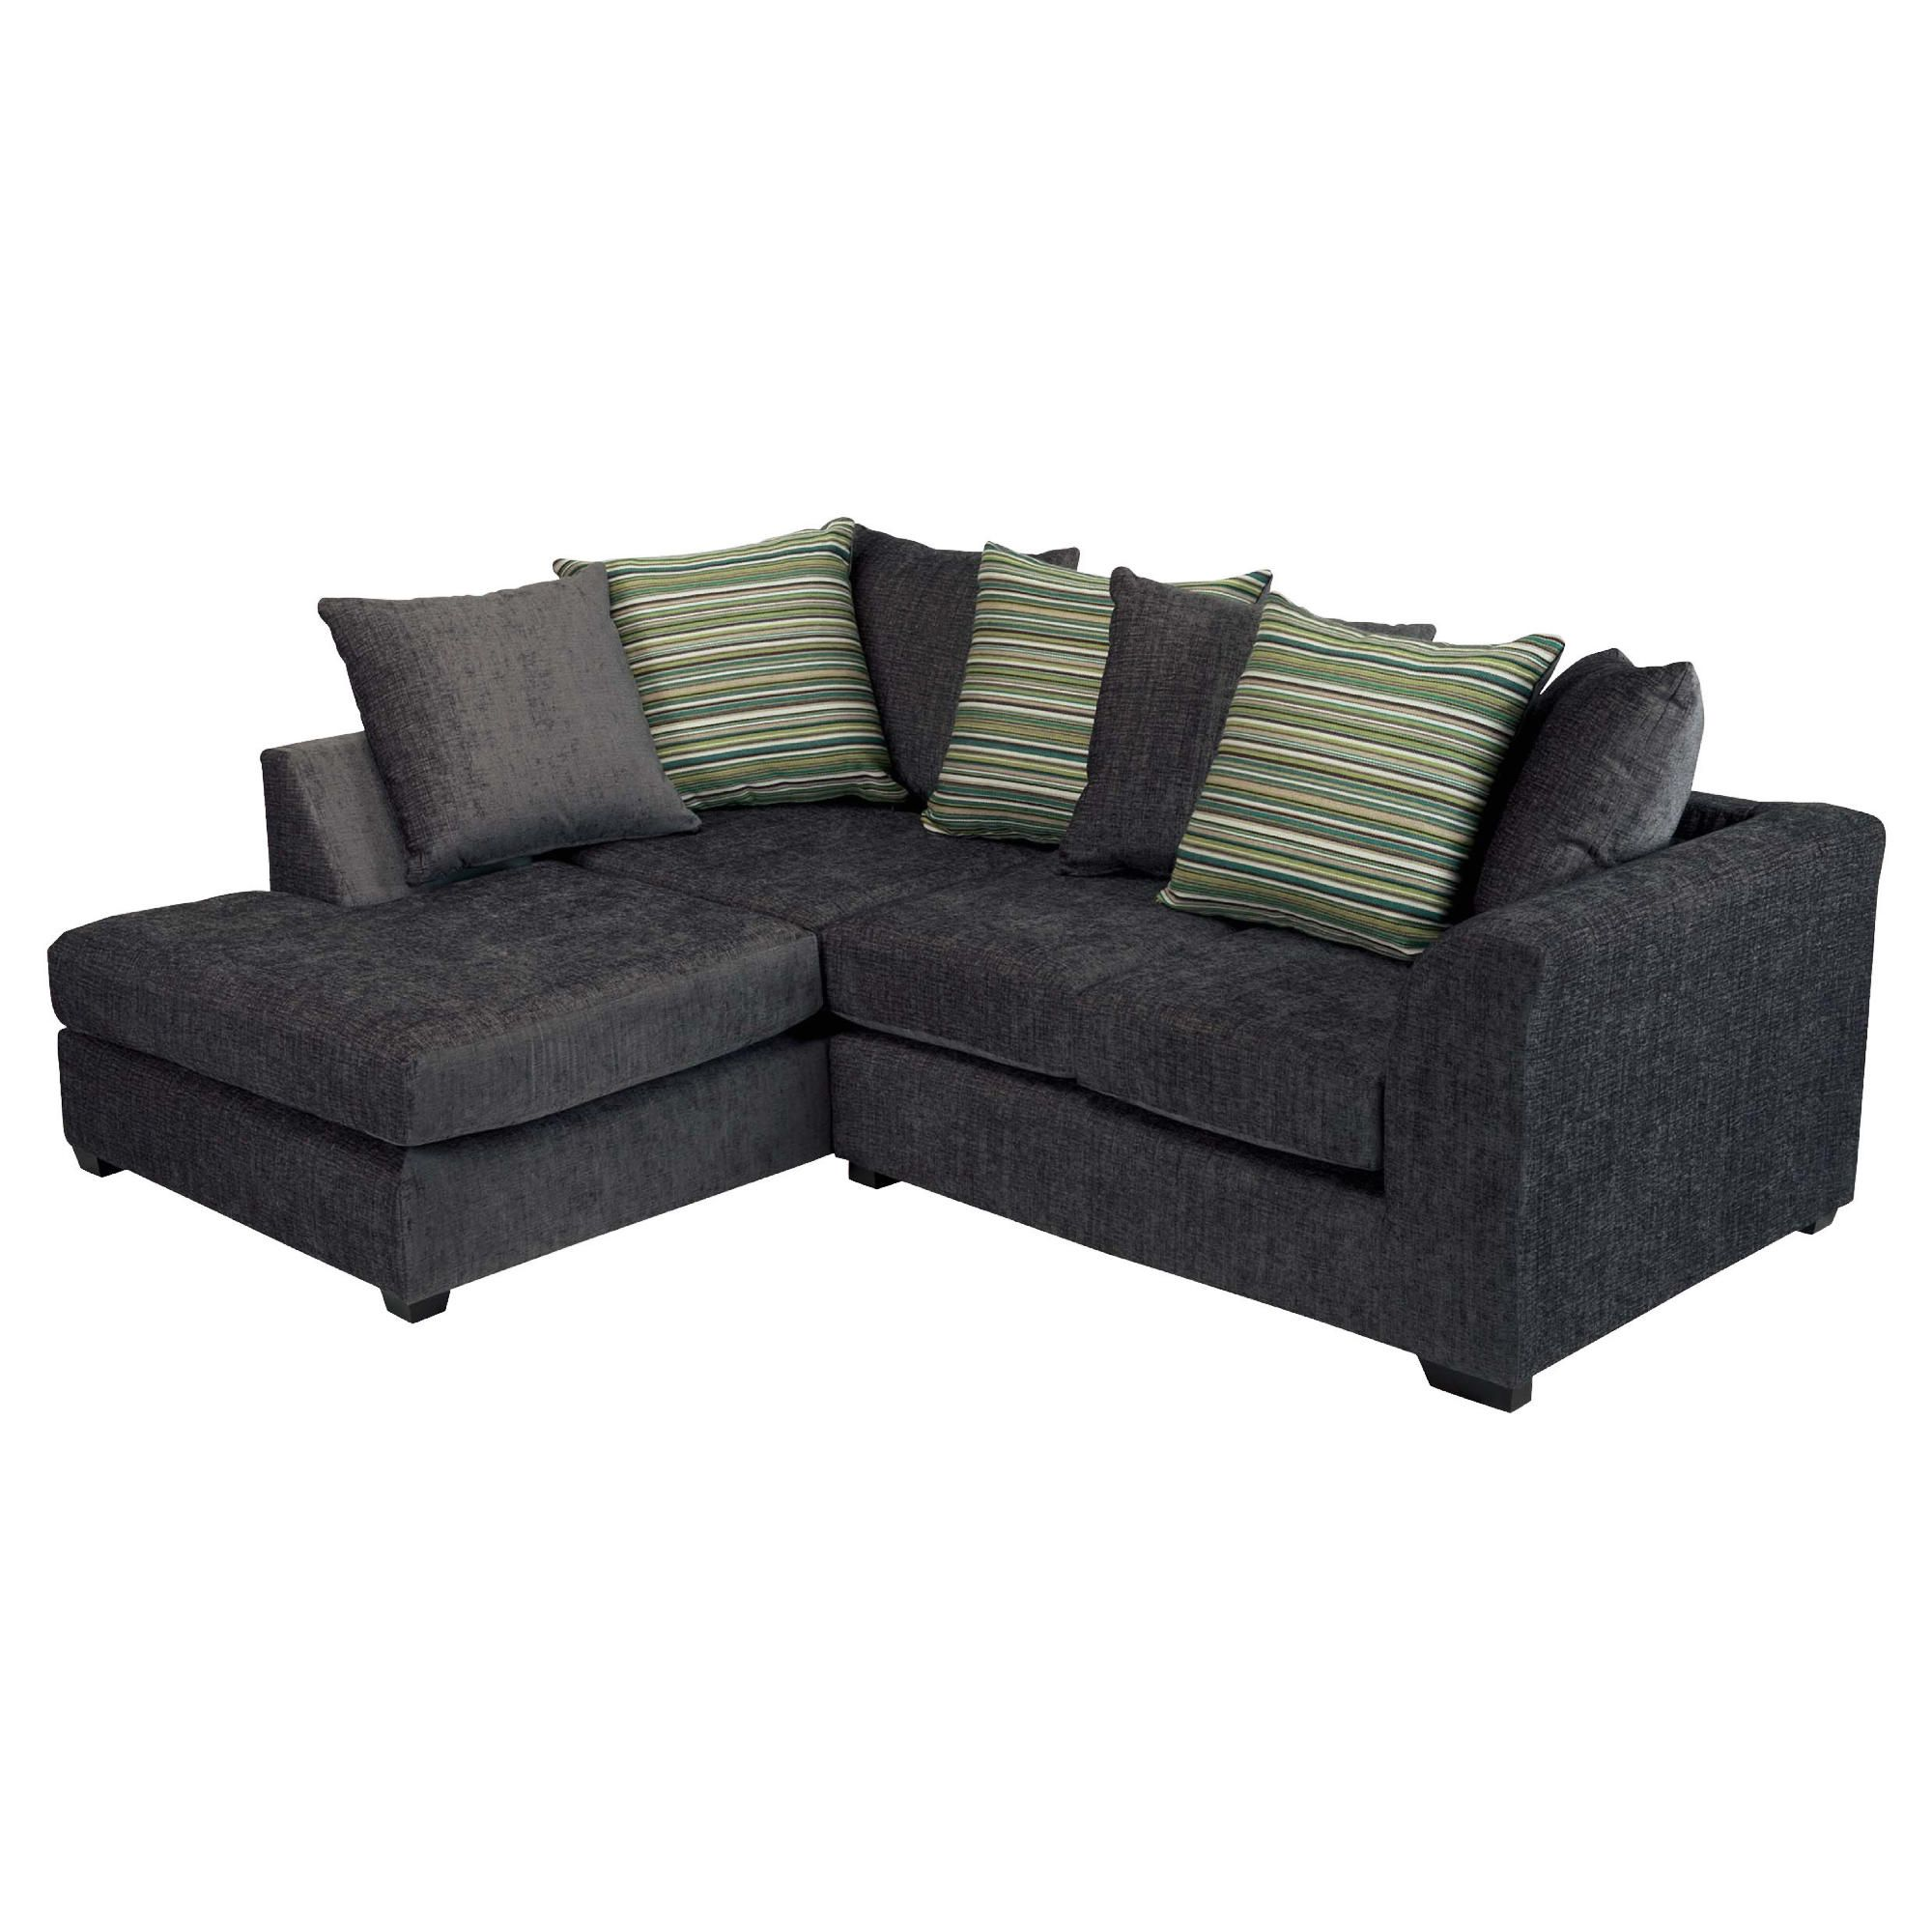 Toronto Fabric Corner Sofa Left Hand Facing, Charcoal at Tescos Direct